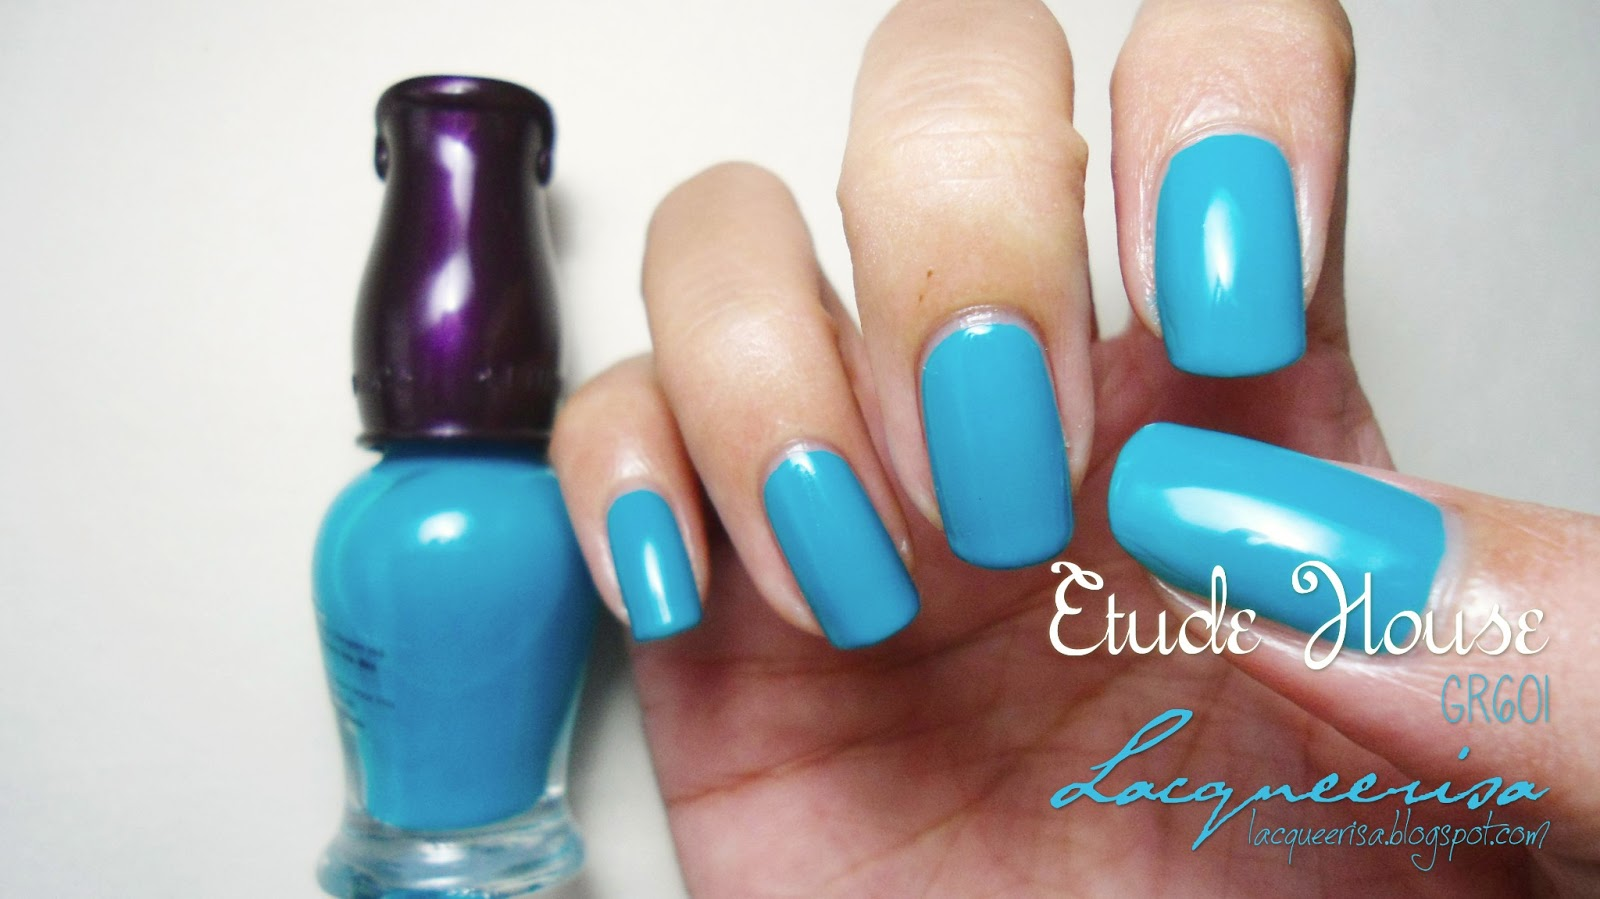 Lacqueerisa: Etude House GR601